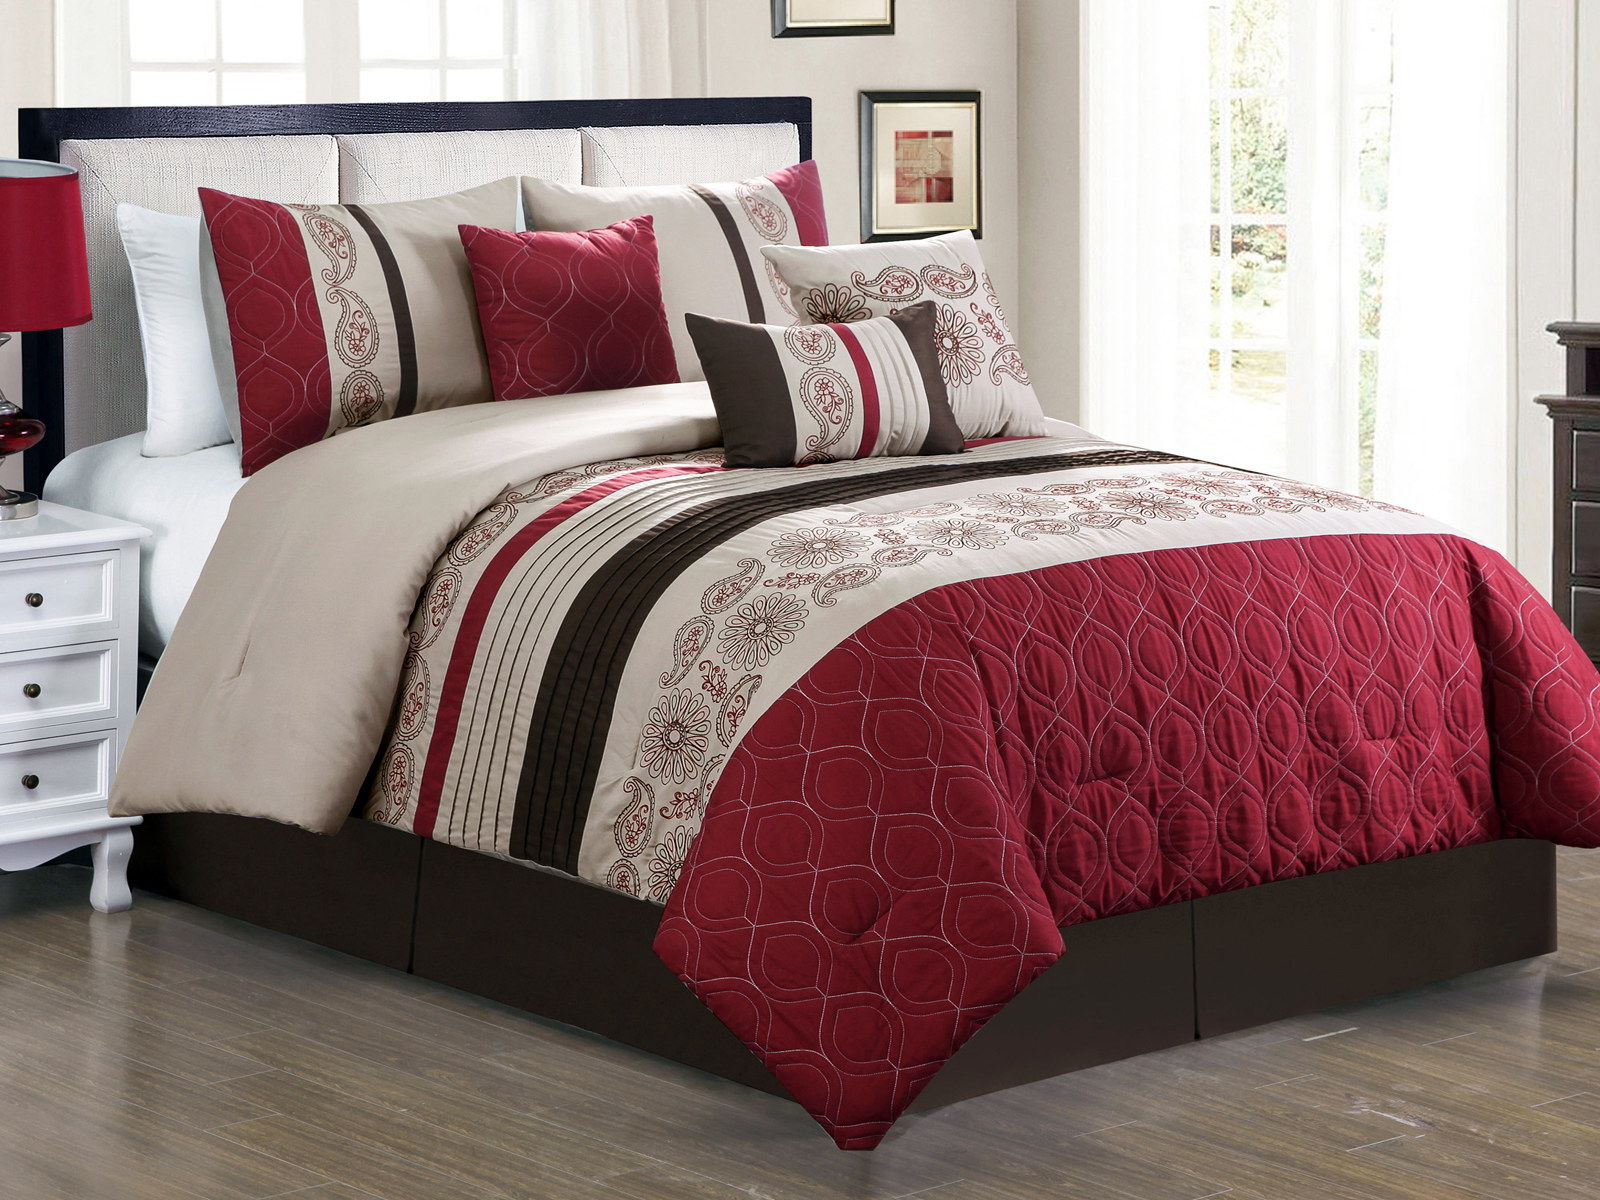 Bedding Quilt Queen Size 3 Pc Embroidered Bed Set Bedspread Burgundy Home Garden Mbln Org